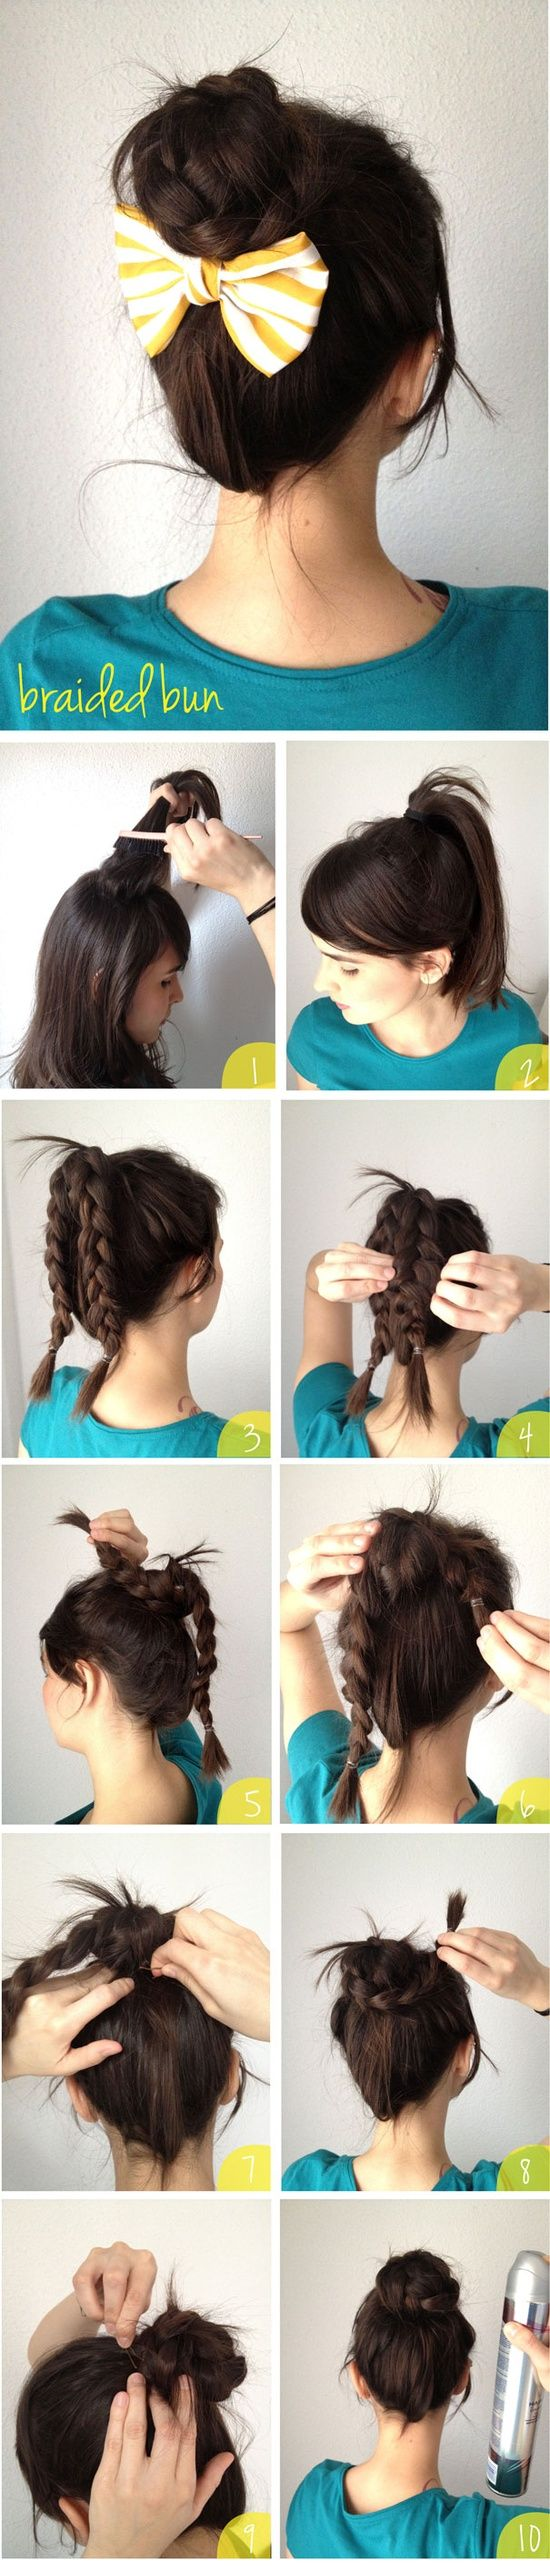 With love grace quick u easy hairstyles hair pinterest